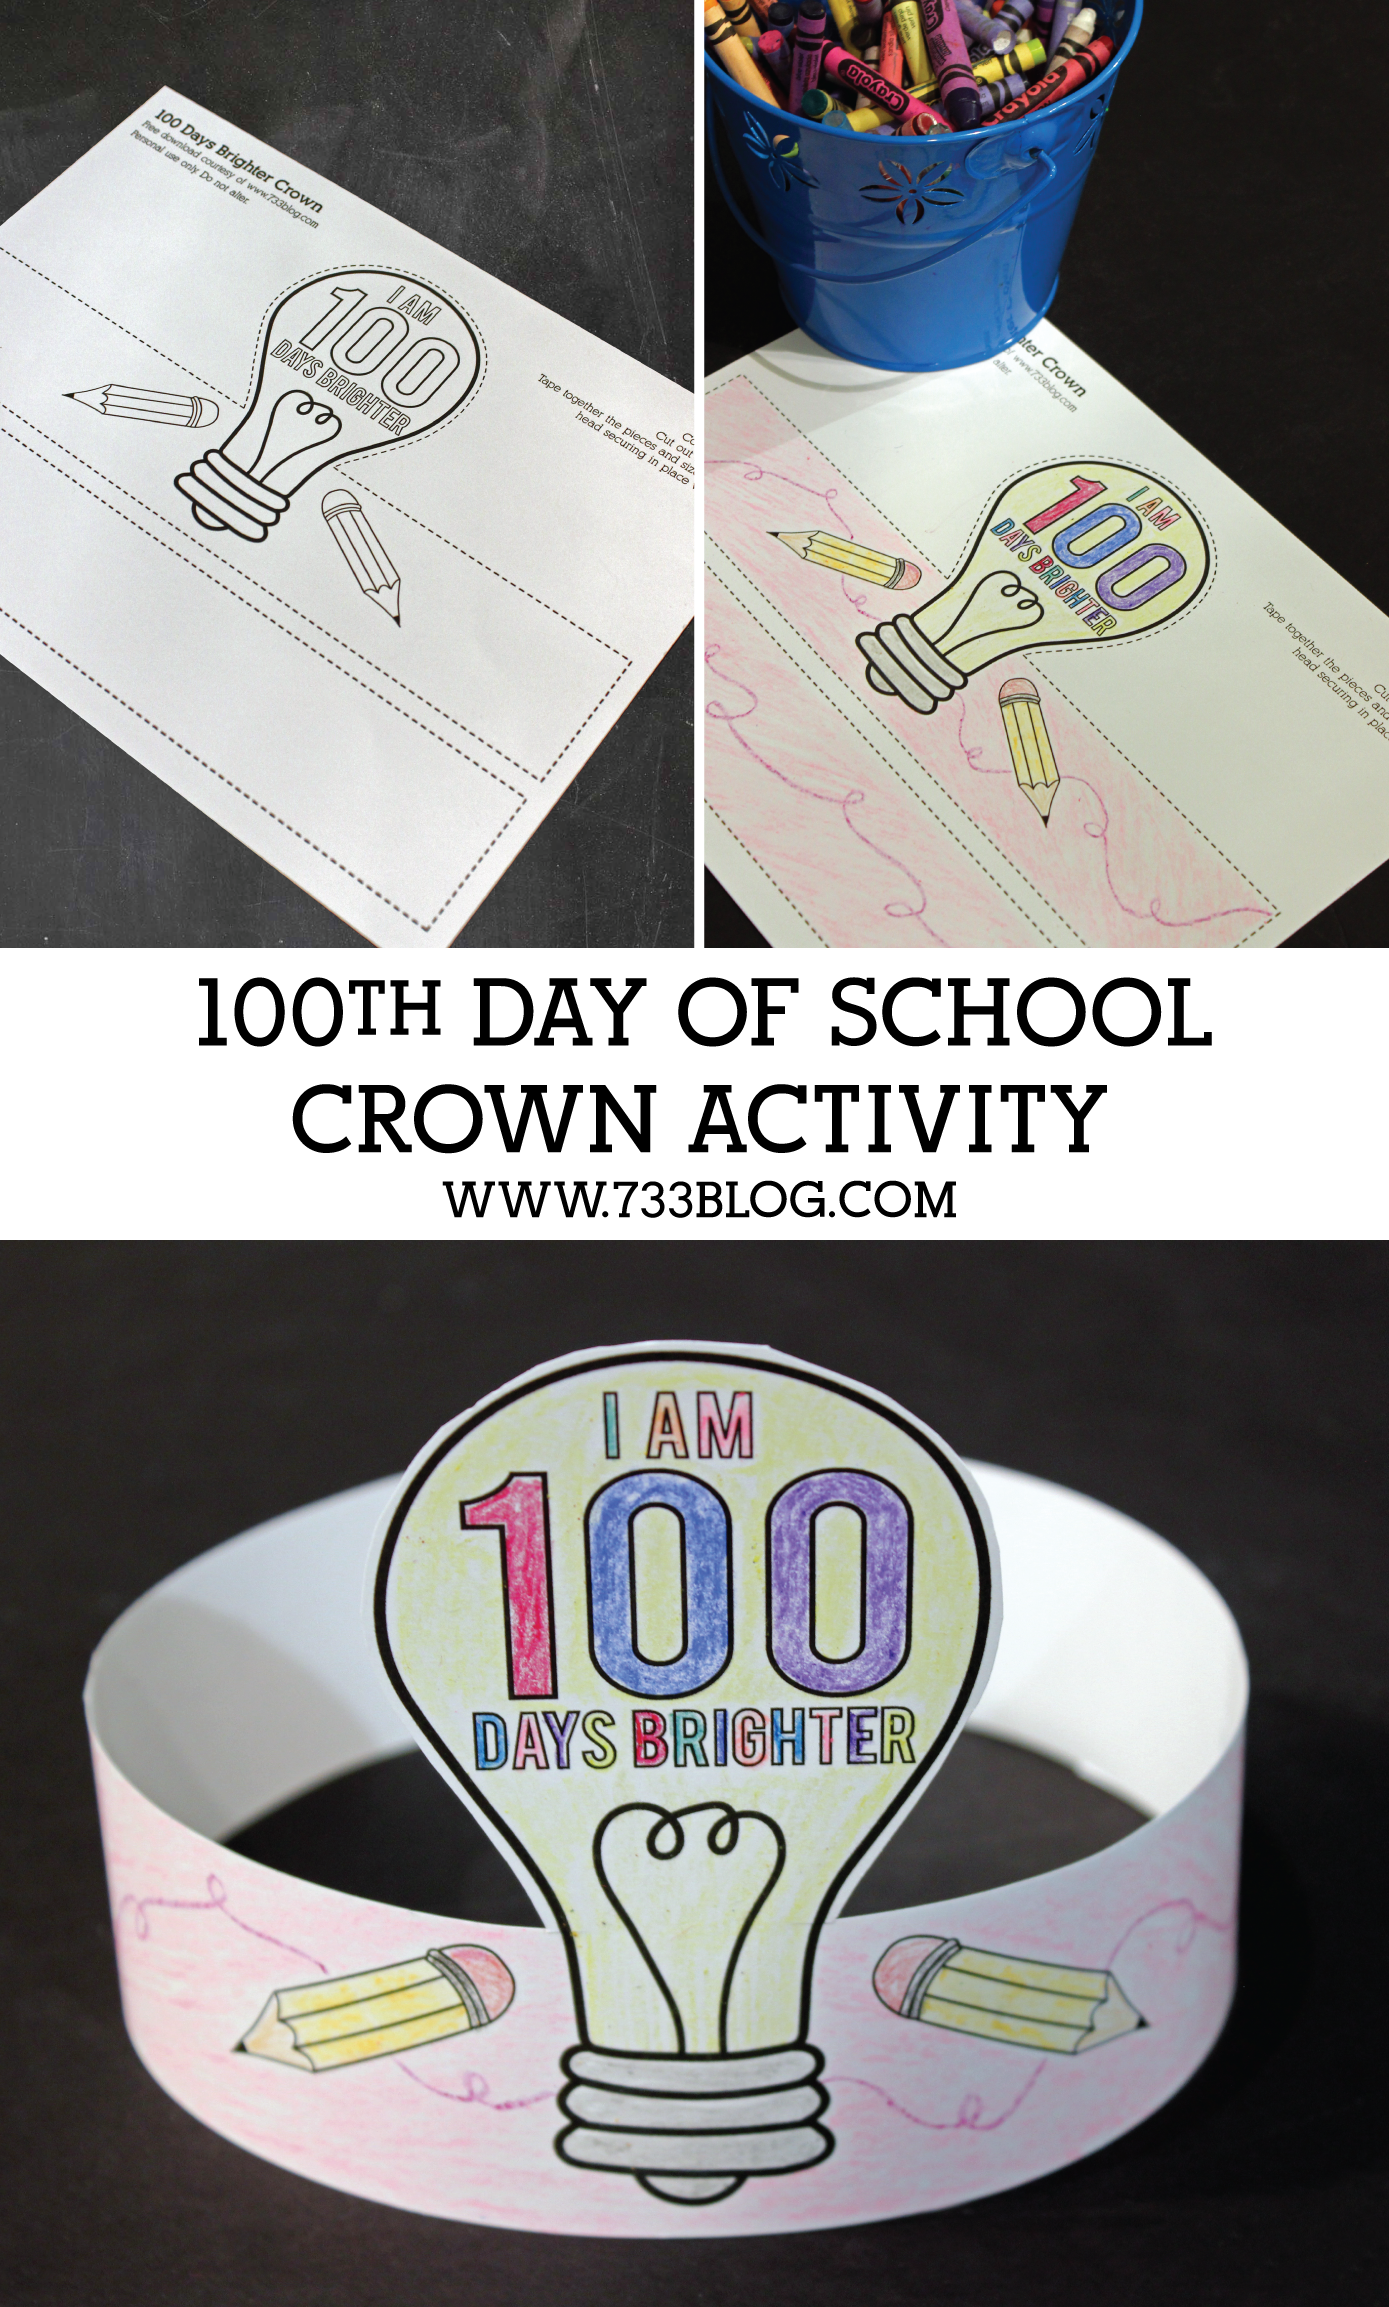 100 days brighter crown activity skola undervisning och for 100th day of school crown template